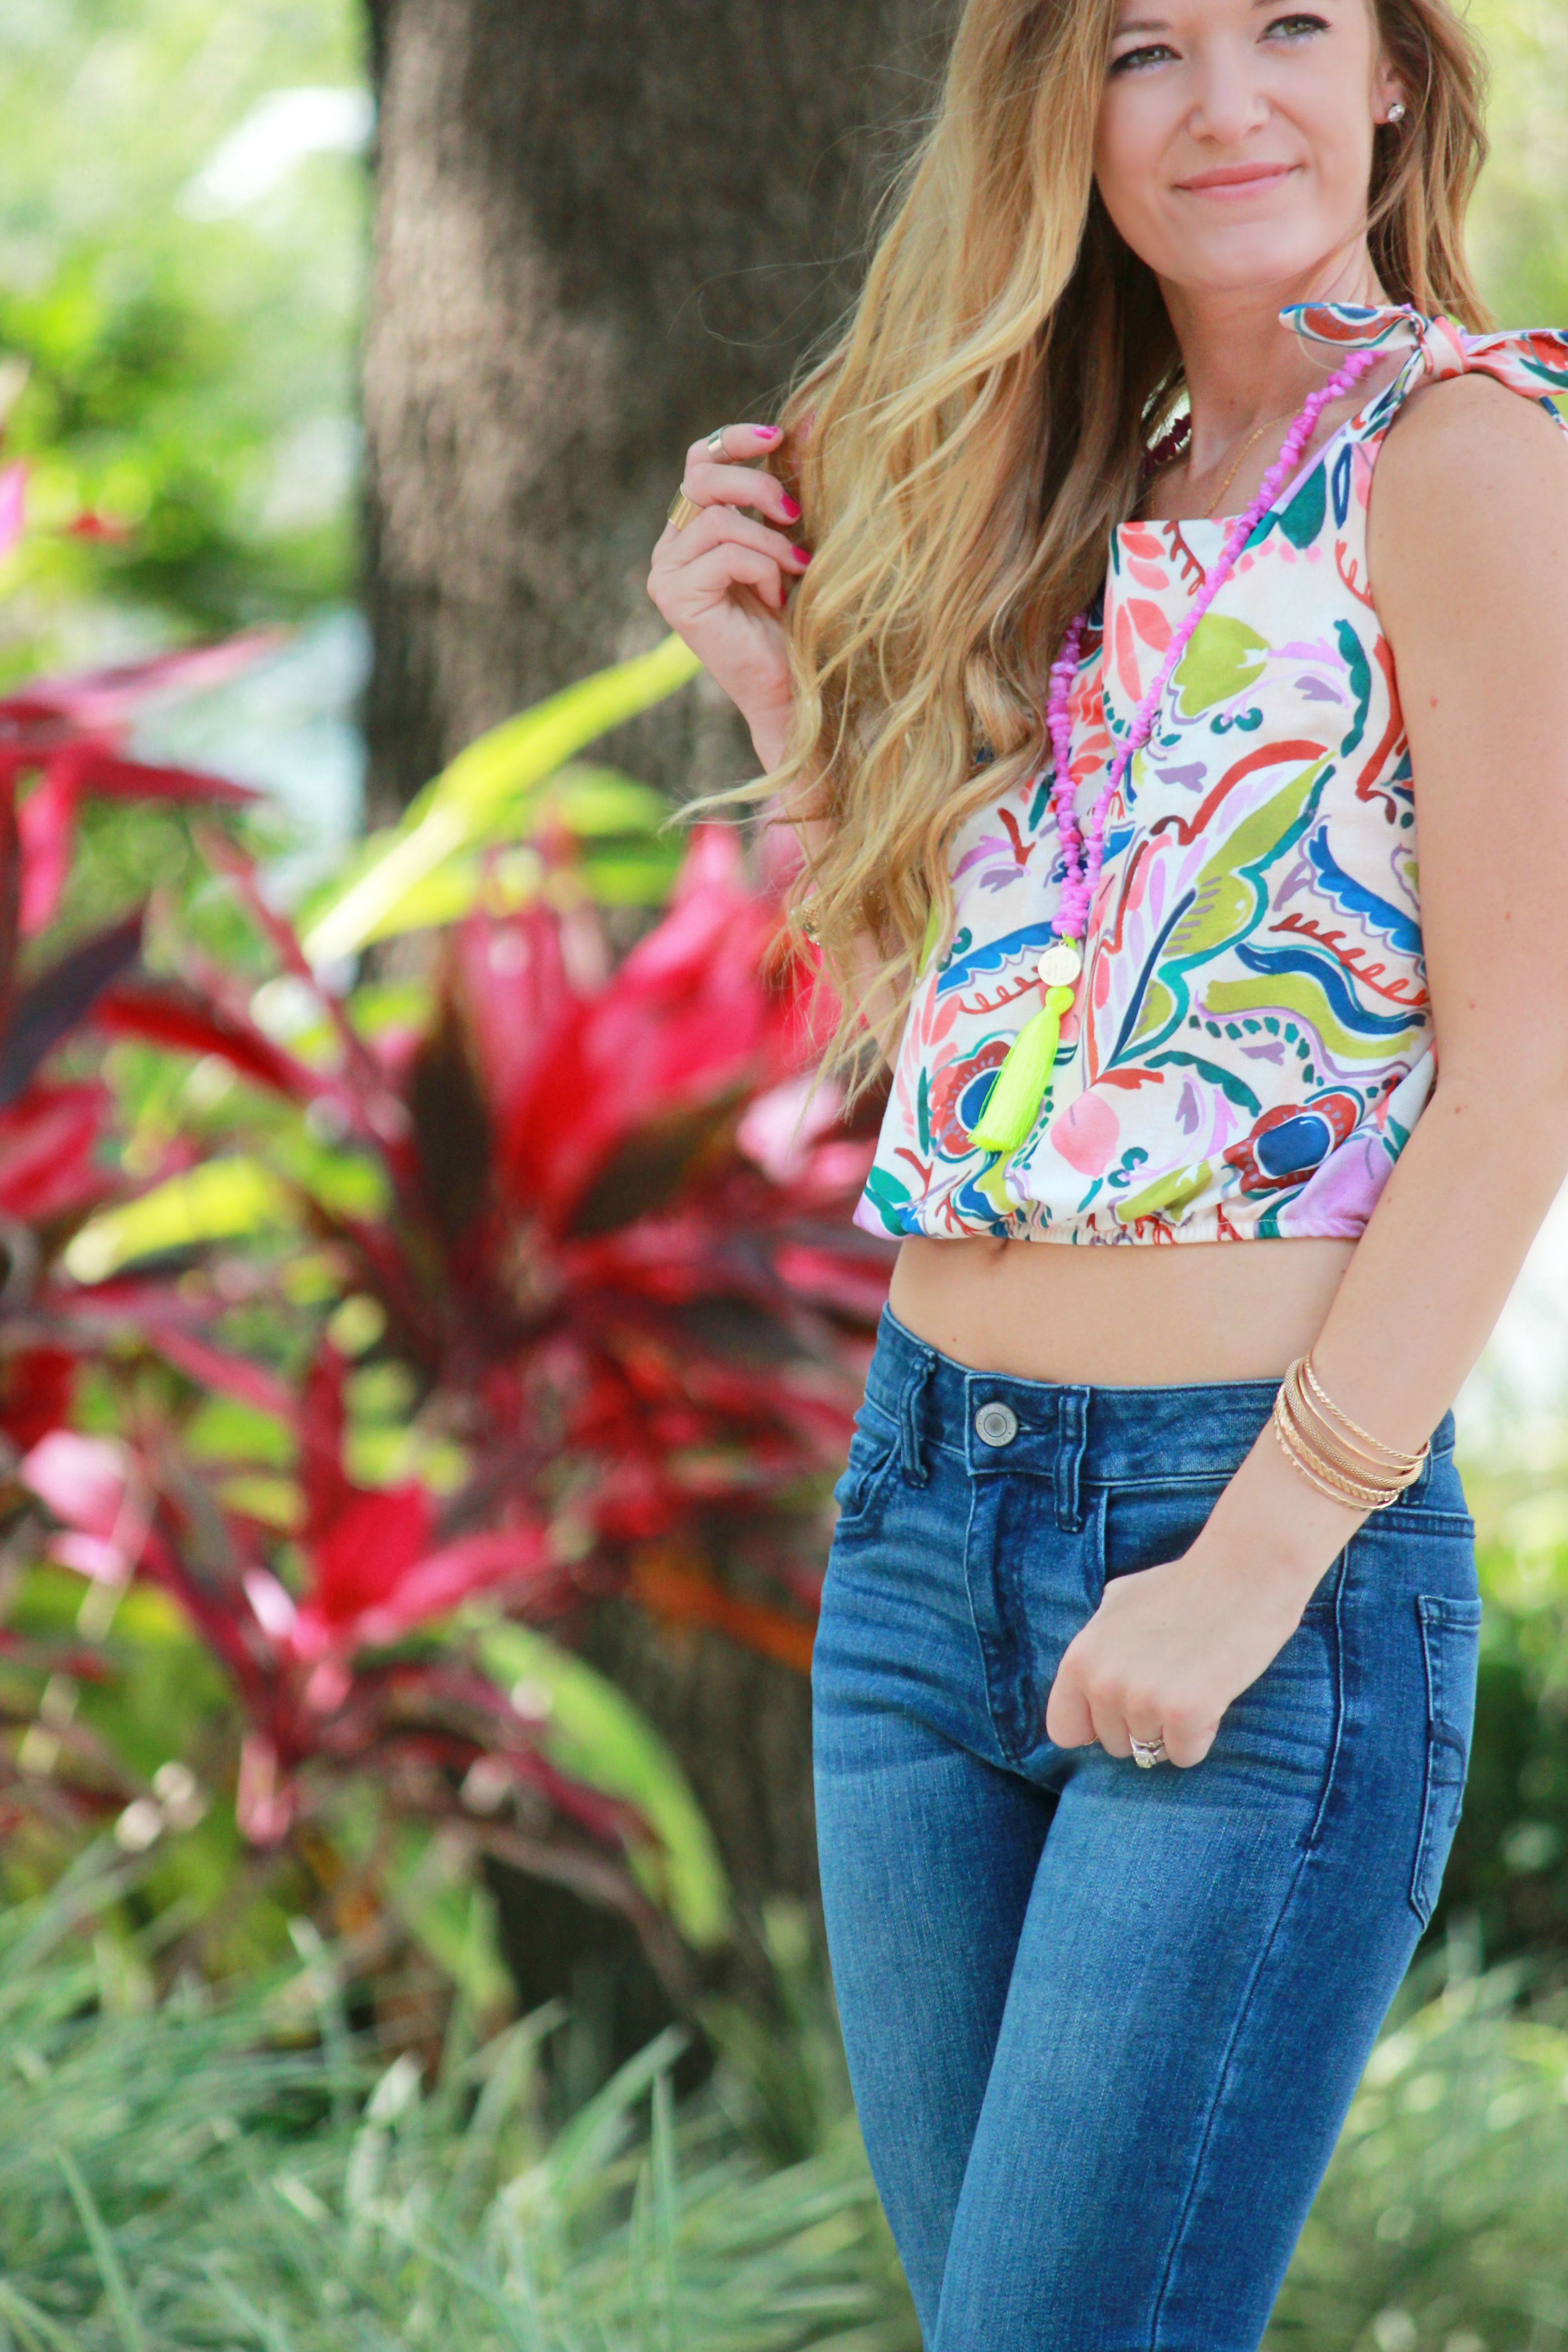 Zara top, American eagle jeans, bracha necklace, tjmaxx wedges, summer outfit, colorful crop top, crop top outfit